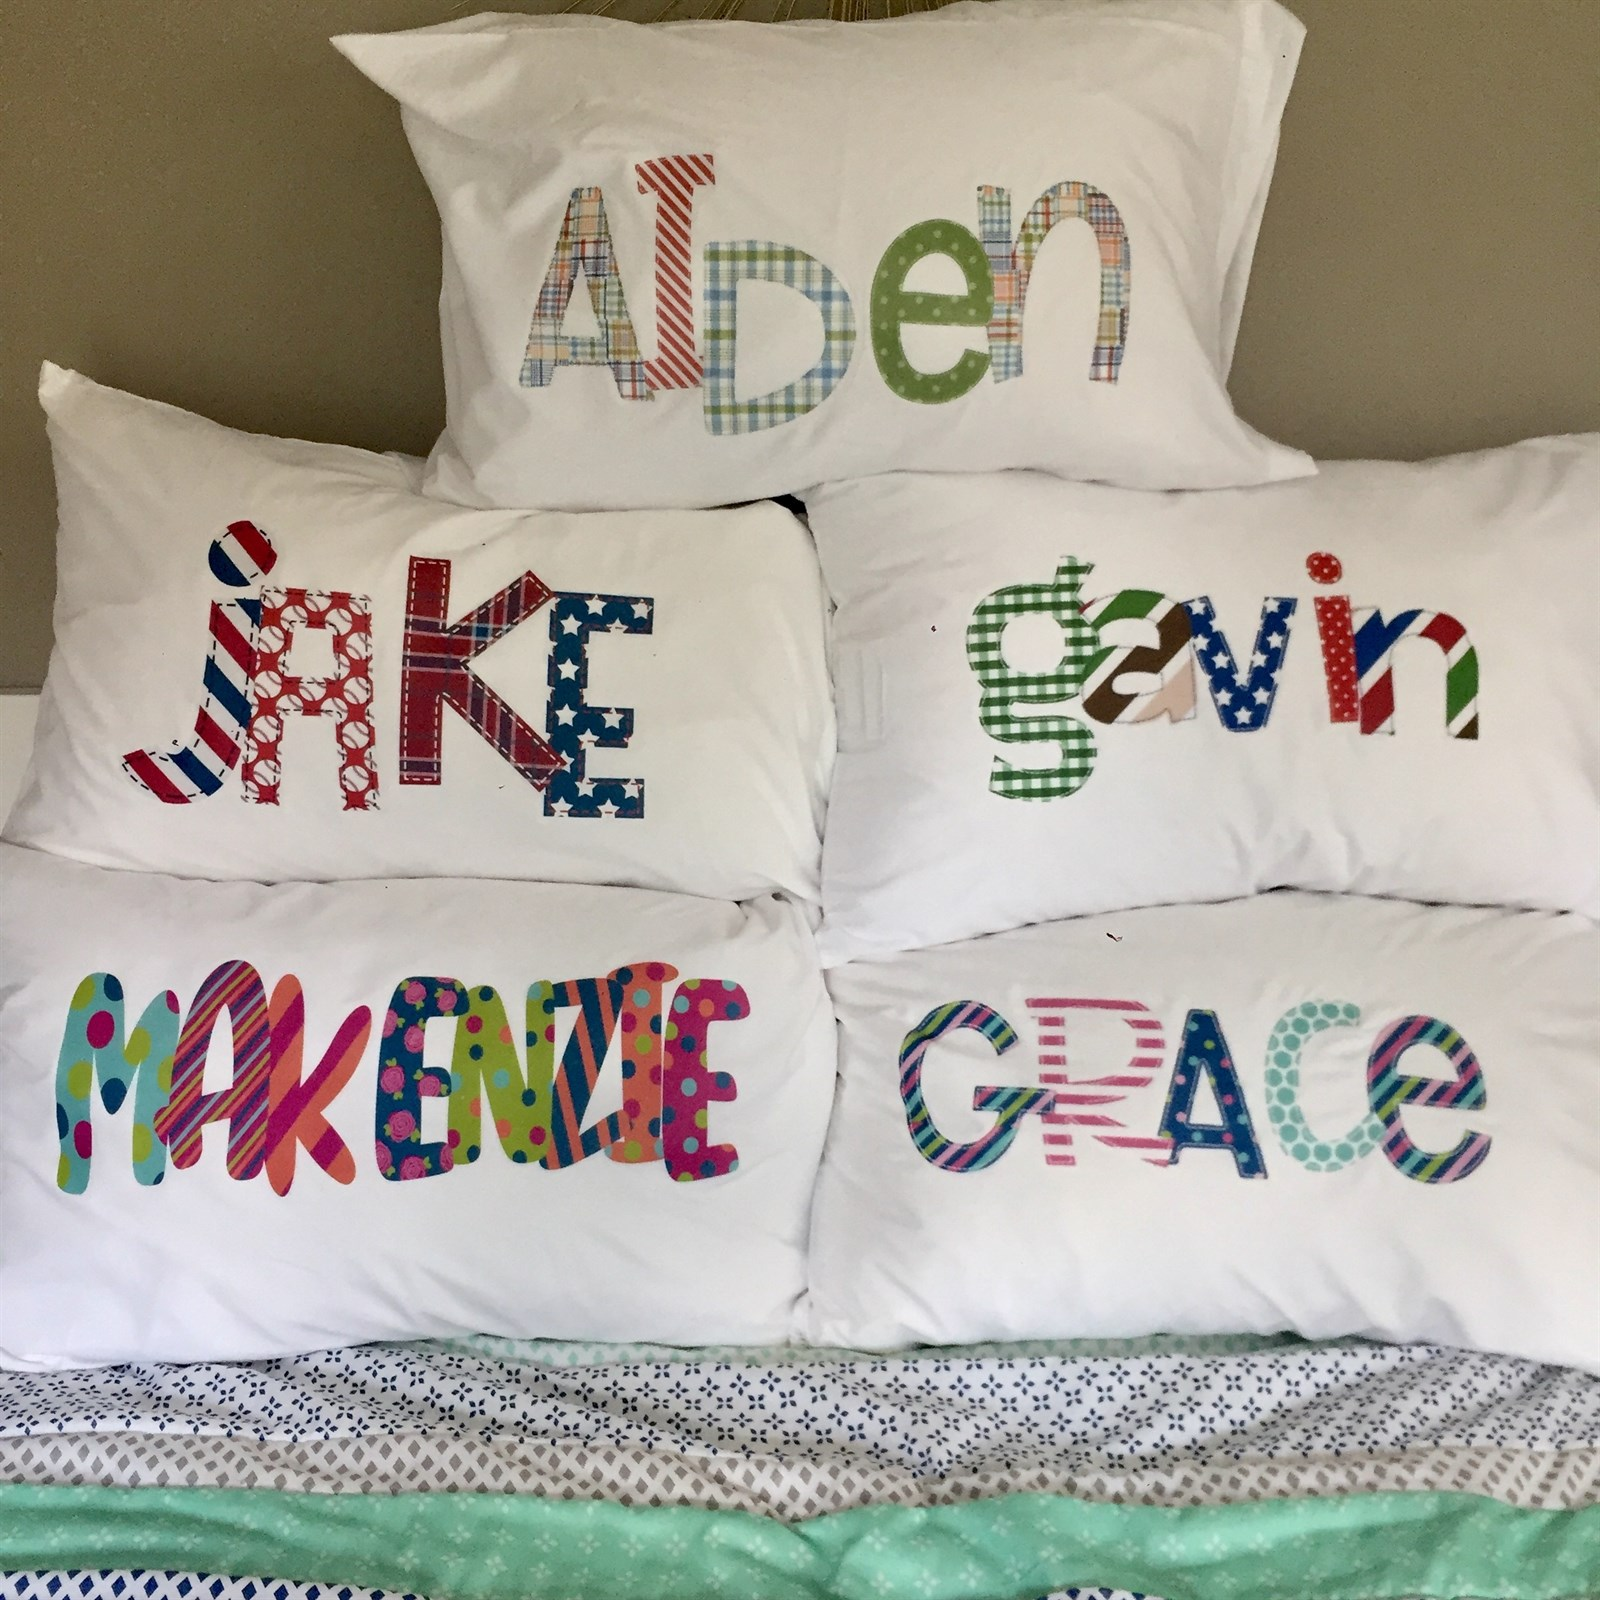 Personalized Pillowcases Only $17.99 w/ Free Shipping